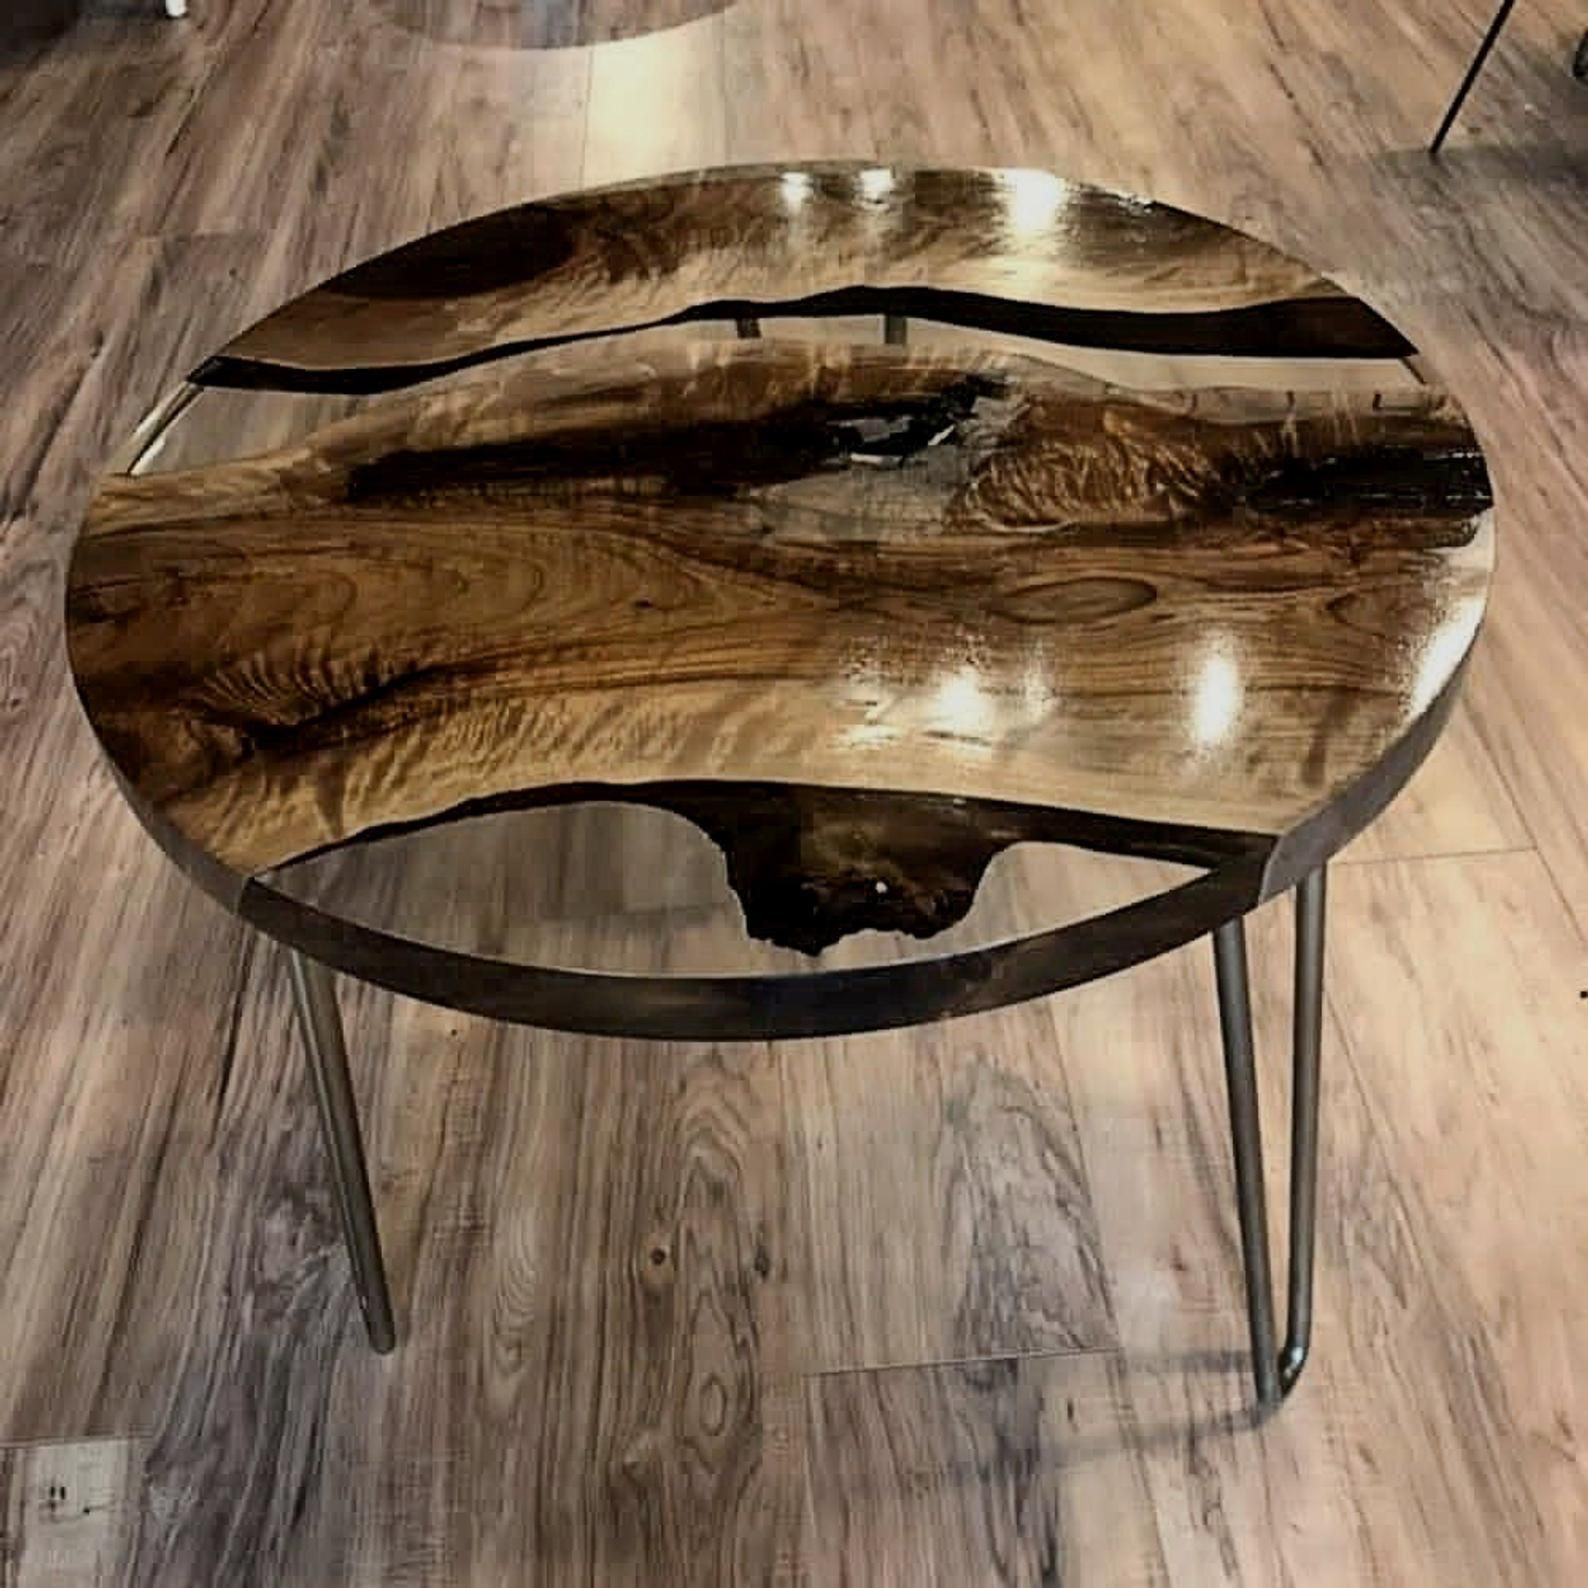 Walnut Round Tablewalnut Coffee Table Clear Epoxy Resin Etsy Resin Table Wood Table Design Epoxy Resin Table [ 1588 x 1588 Pixel ]